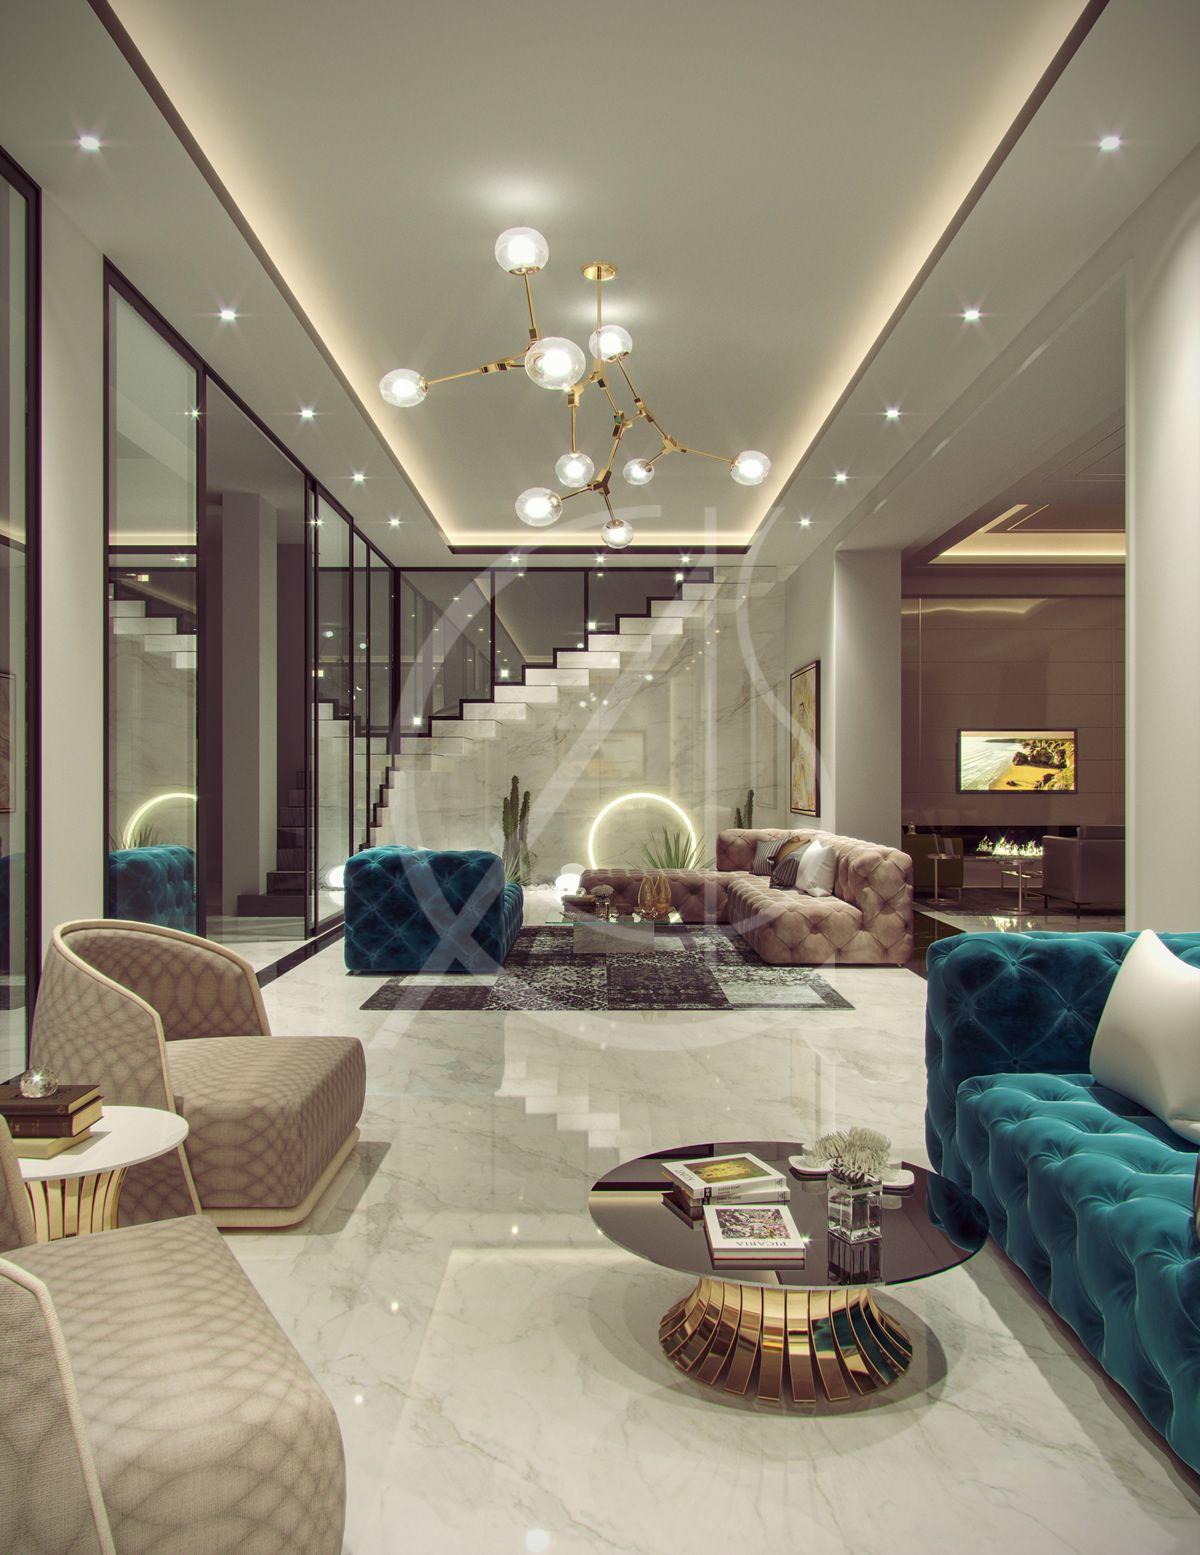 Family Villa Contemporary Arabic Interior Design Riyadh Saudi